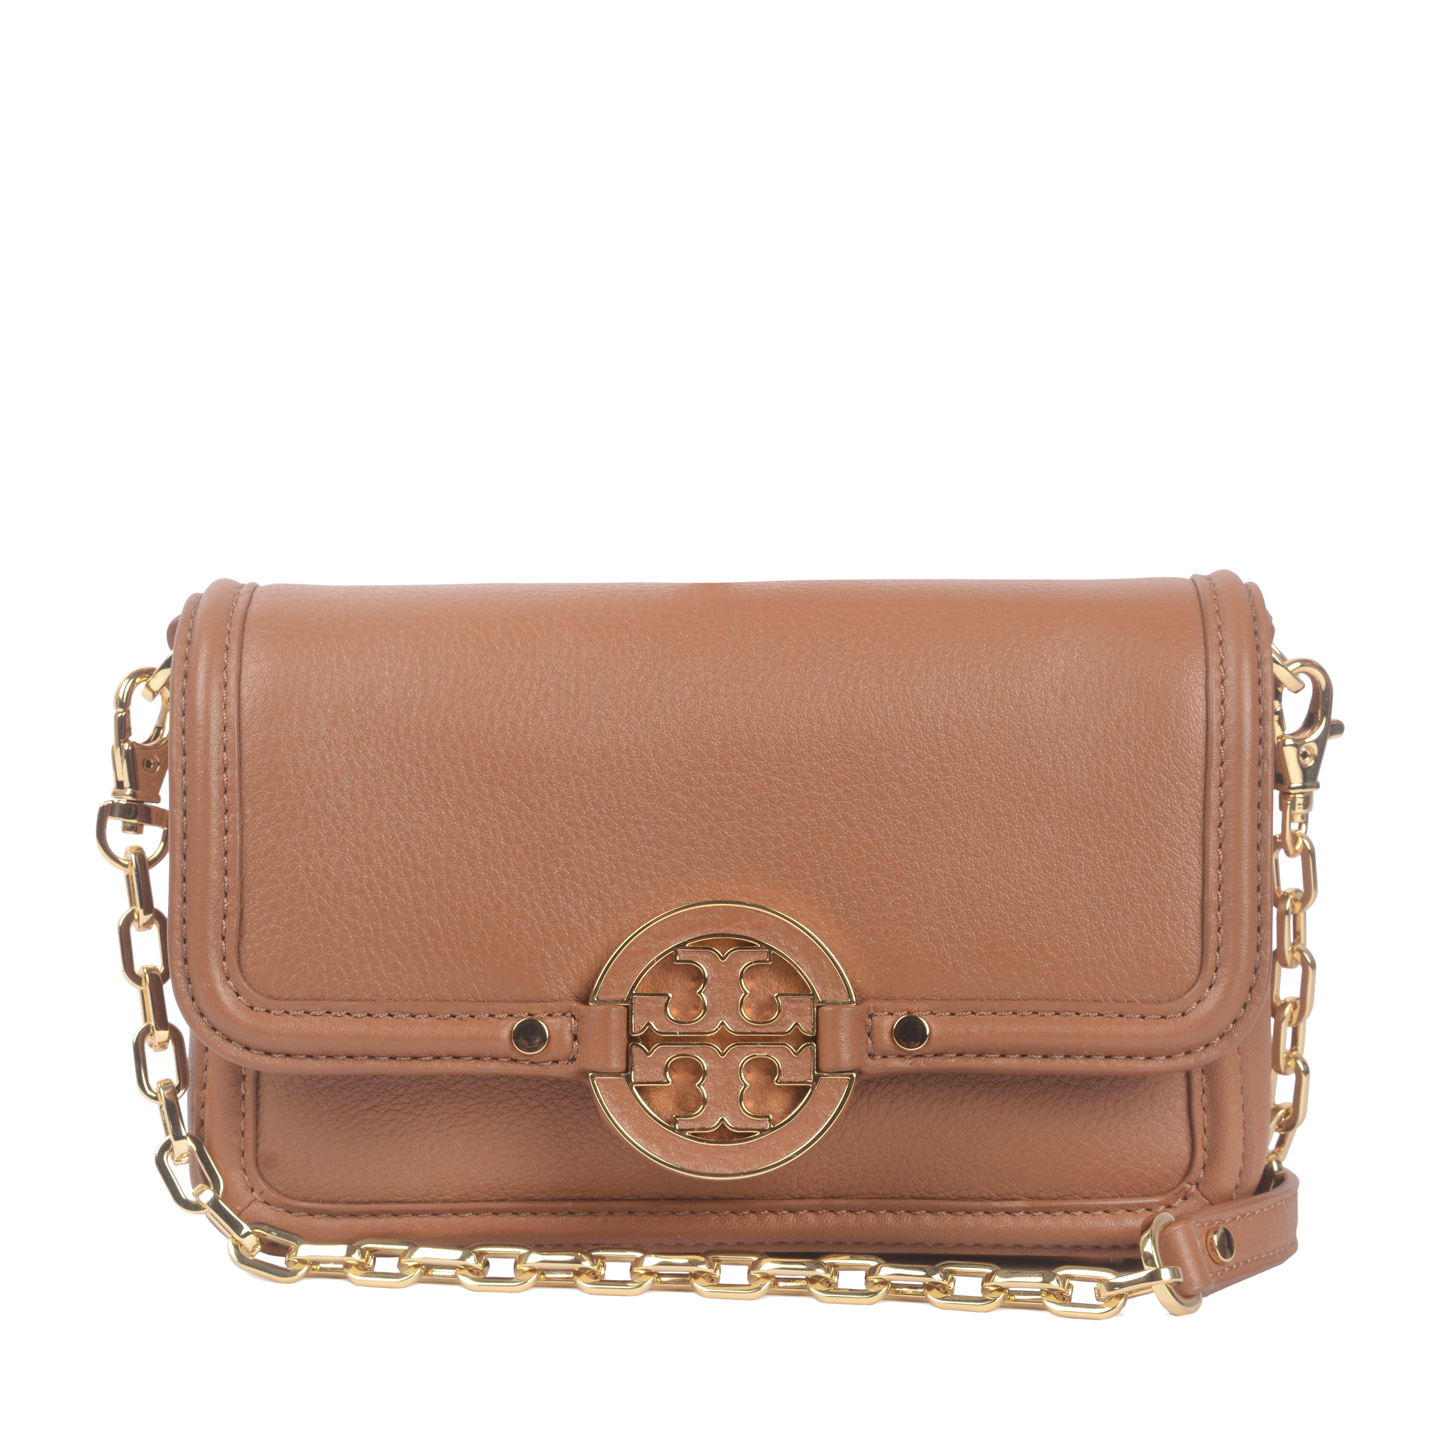 Tory Burch Amanda Chain Strap Mini Cross-body